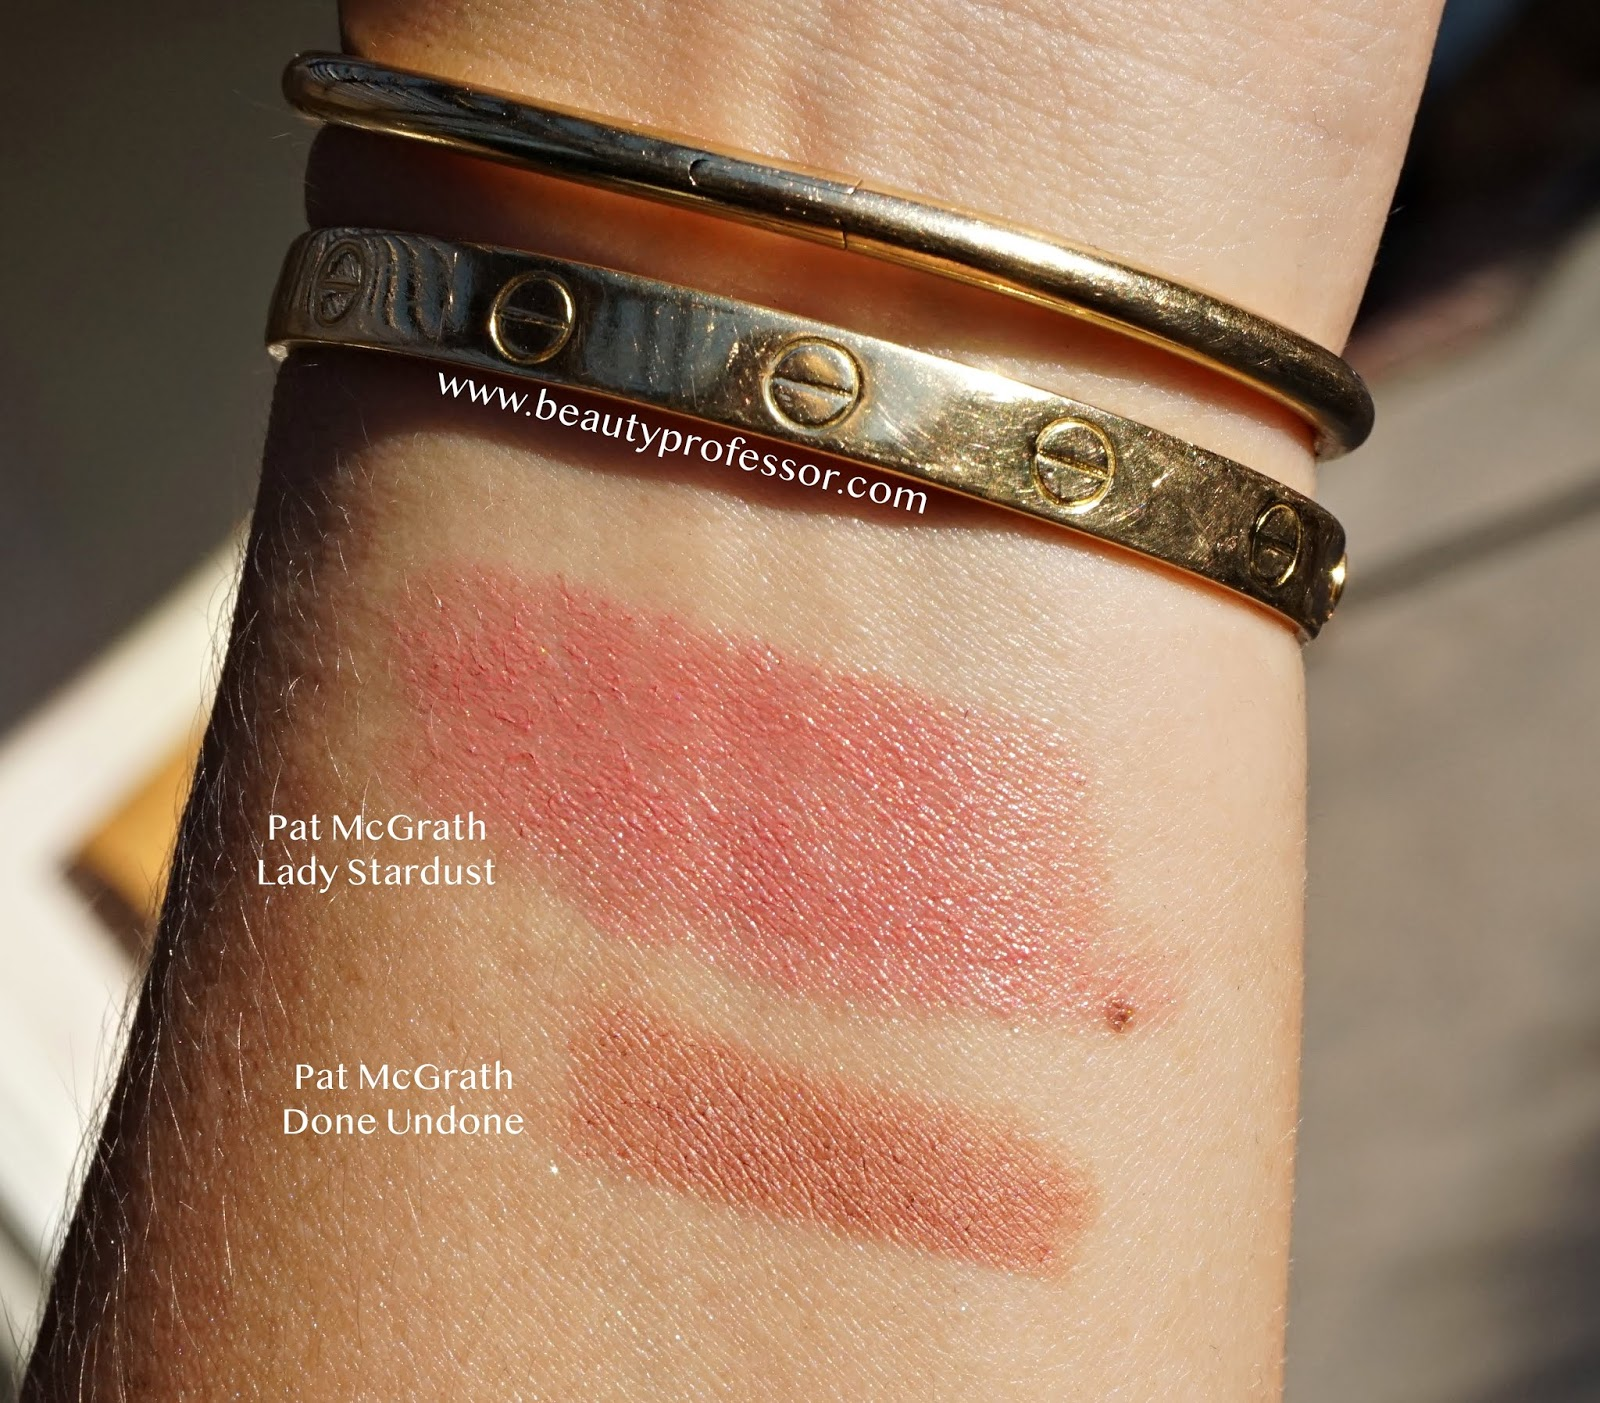 Pat McGrath lady stardust  lipstick swatches